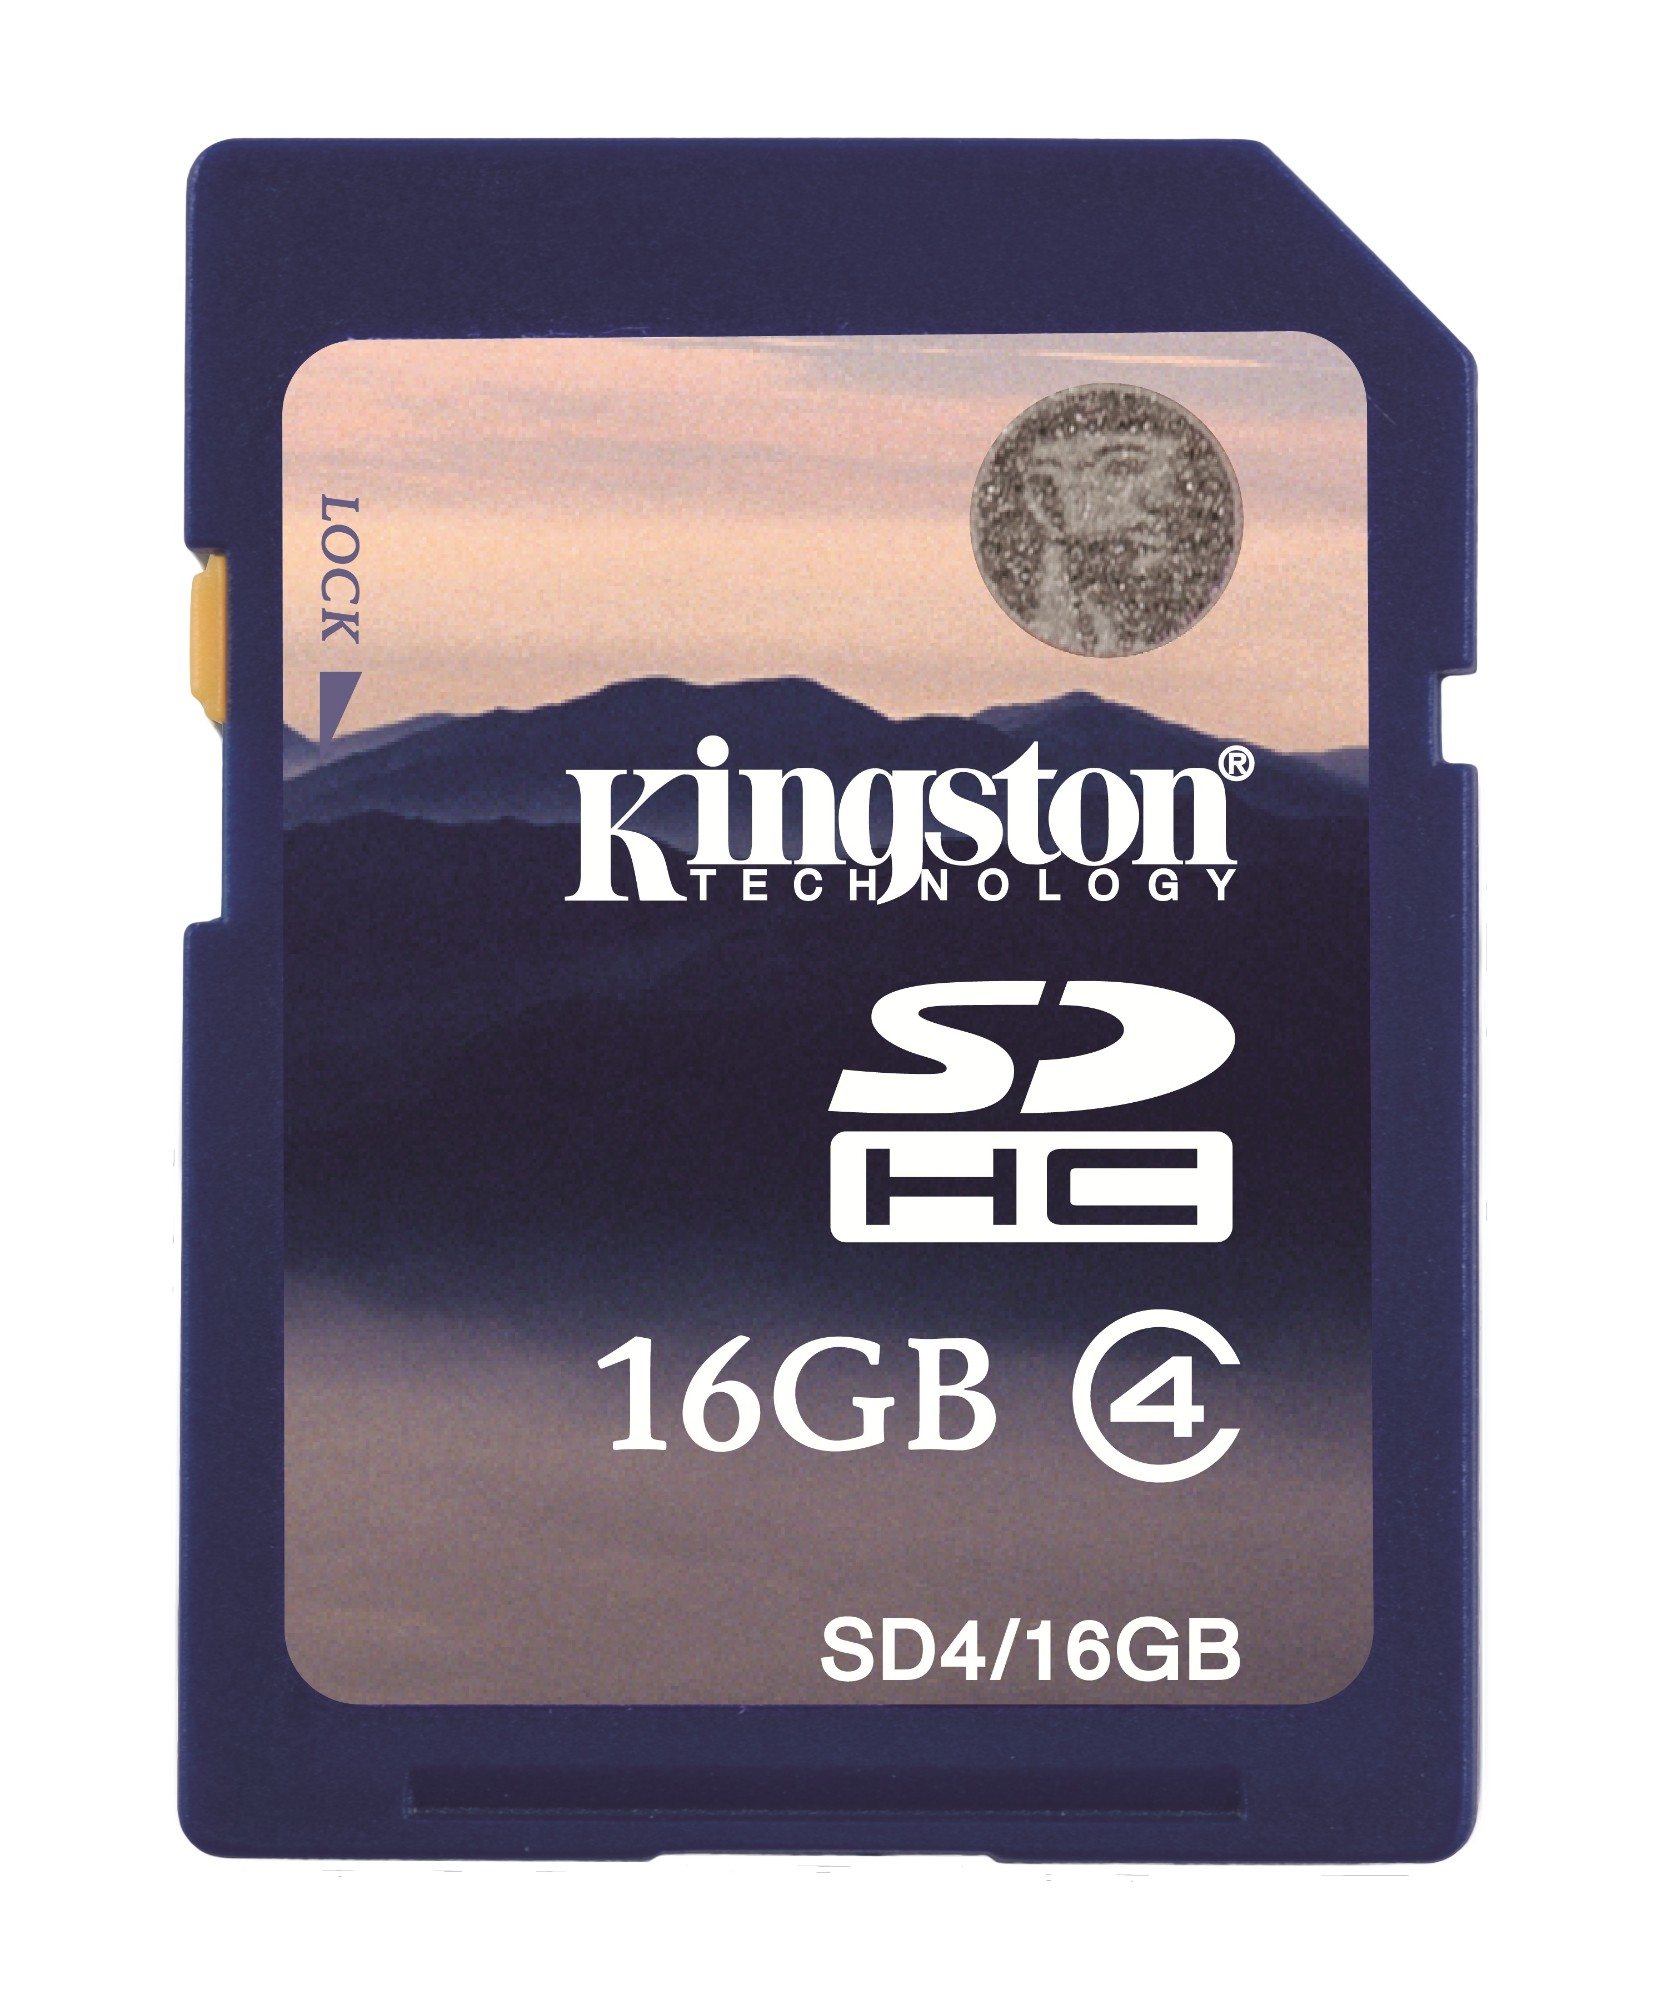 Kingston Technology 16GB SDHC Card memory card Class 4 Flash